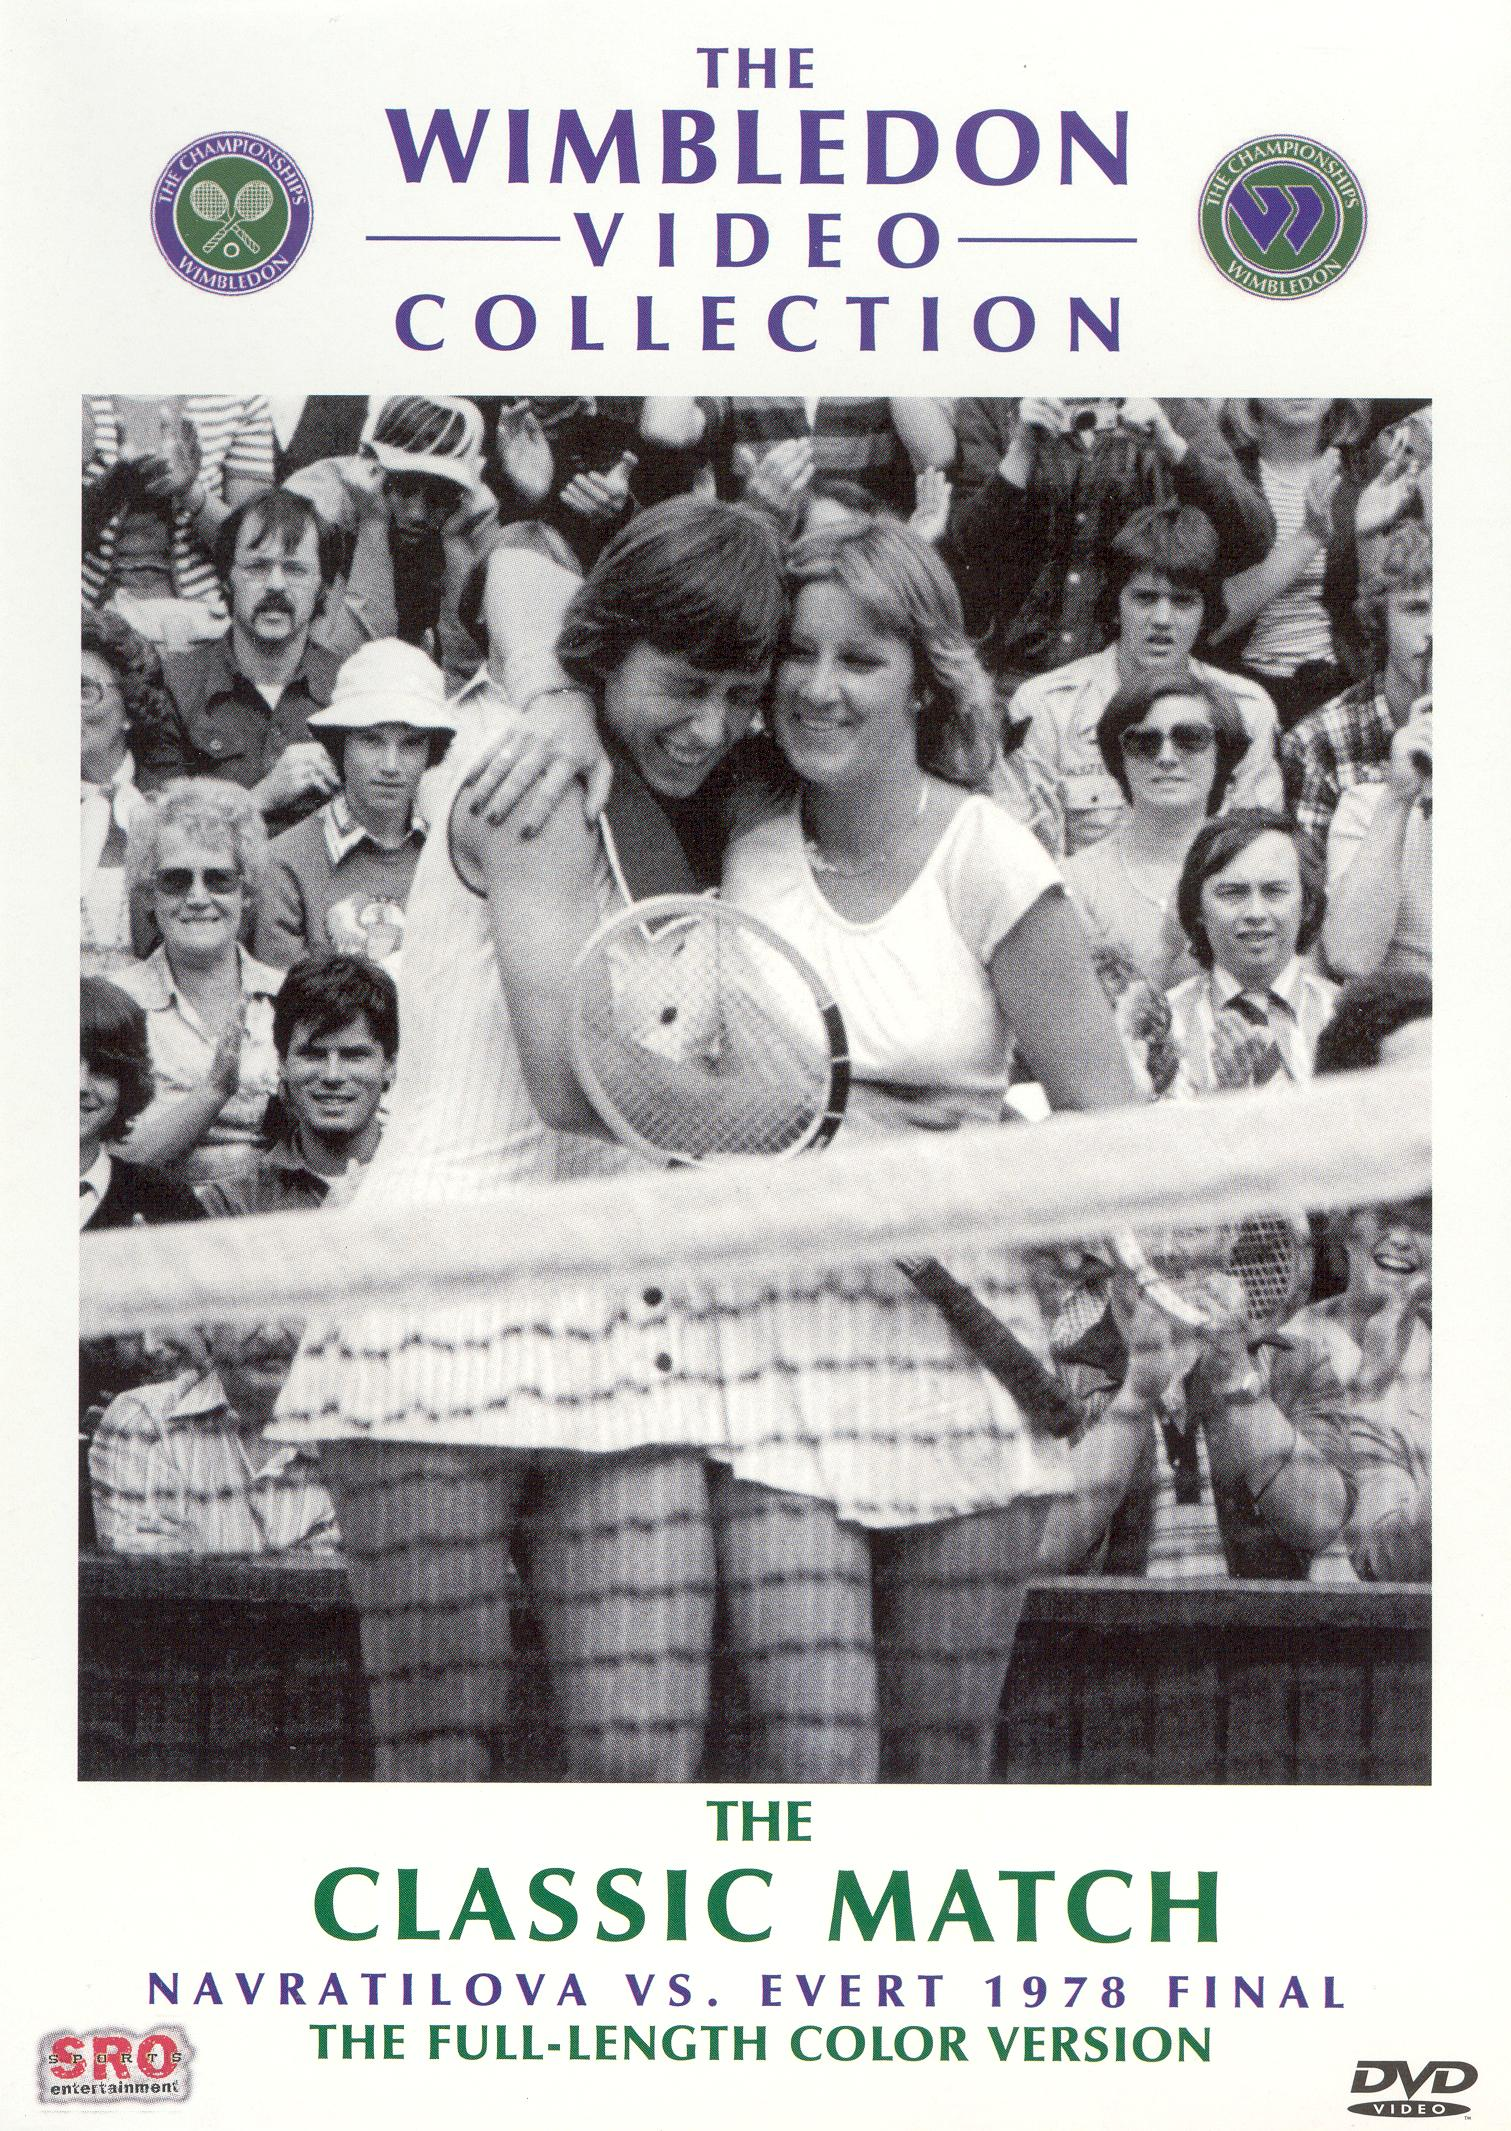 The Wimbledon Video Collection: The Classic Match - Navratilova vs. Evert 1978 Final